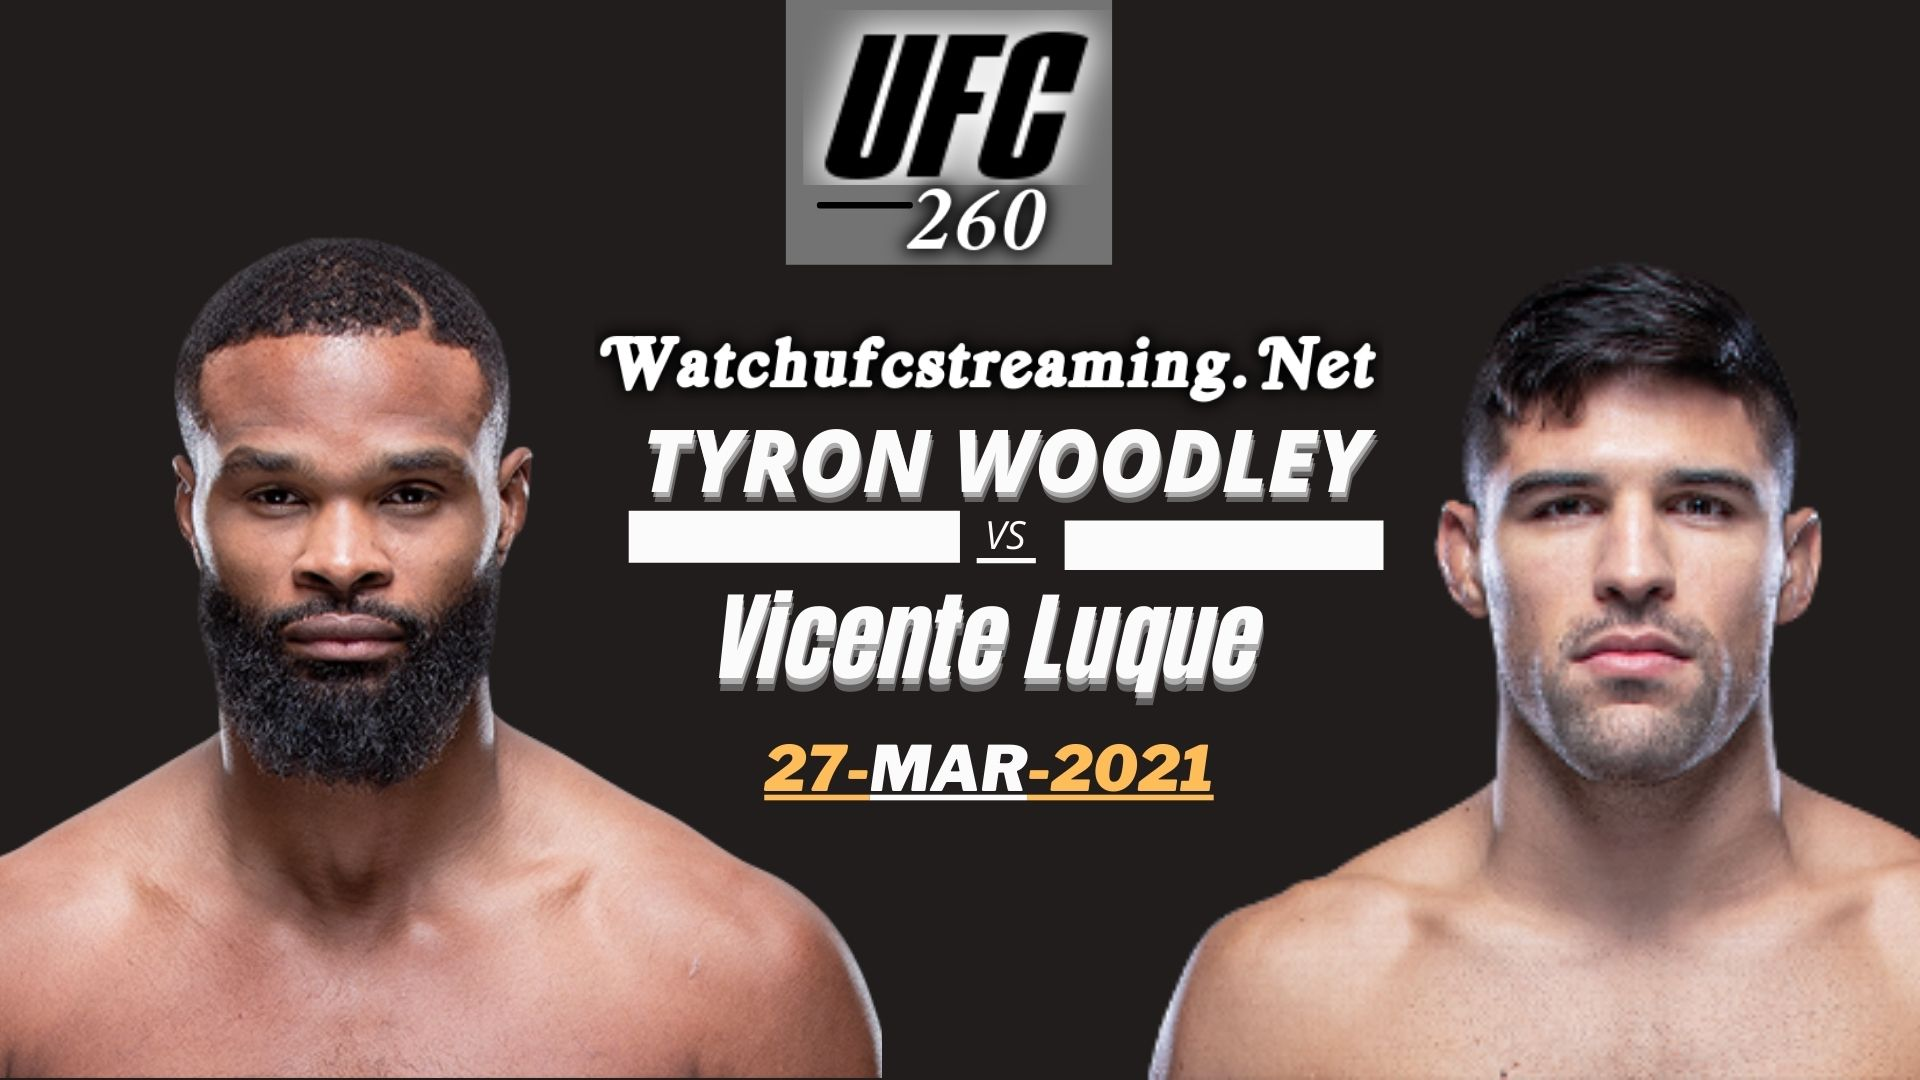 Result UFC 260: Tyron Woodley vs Vicente Luque 2021